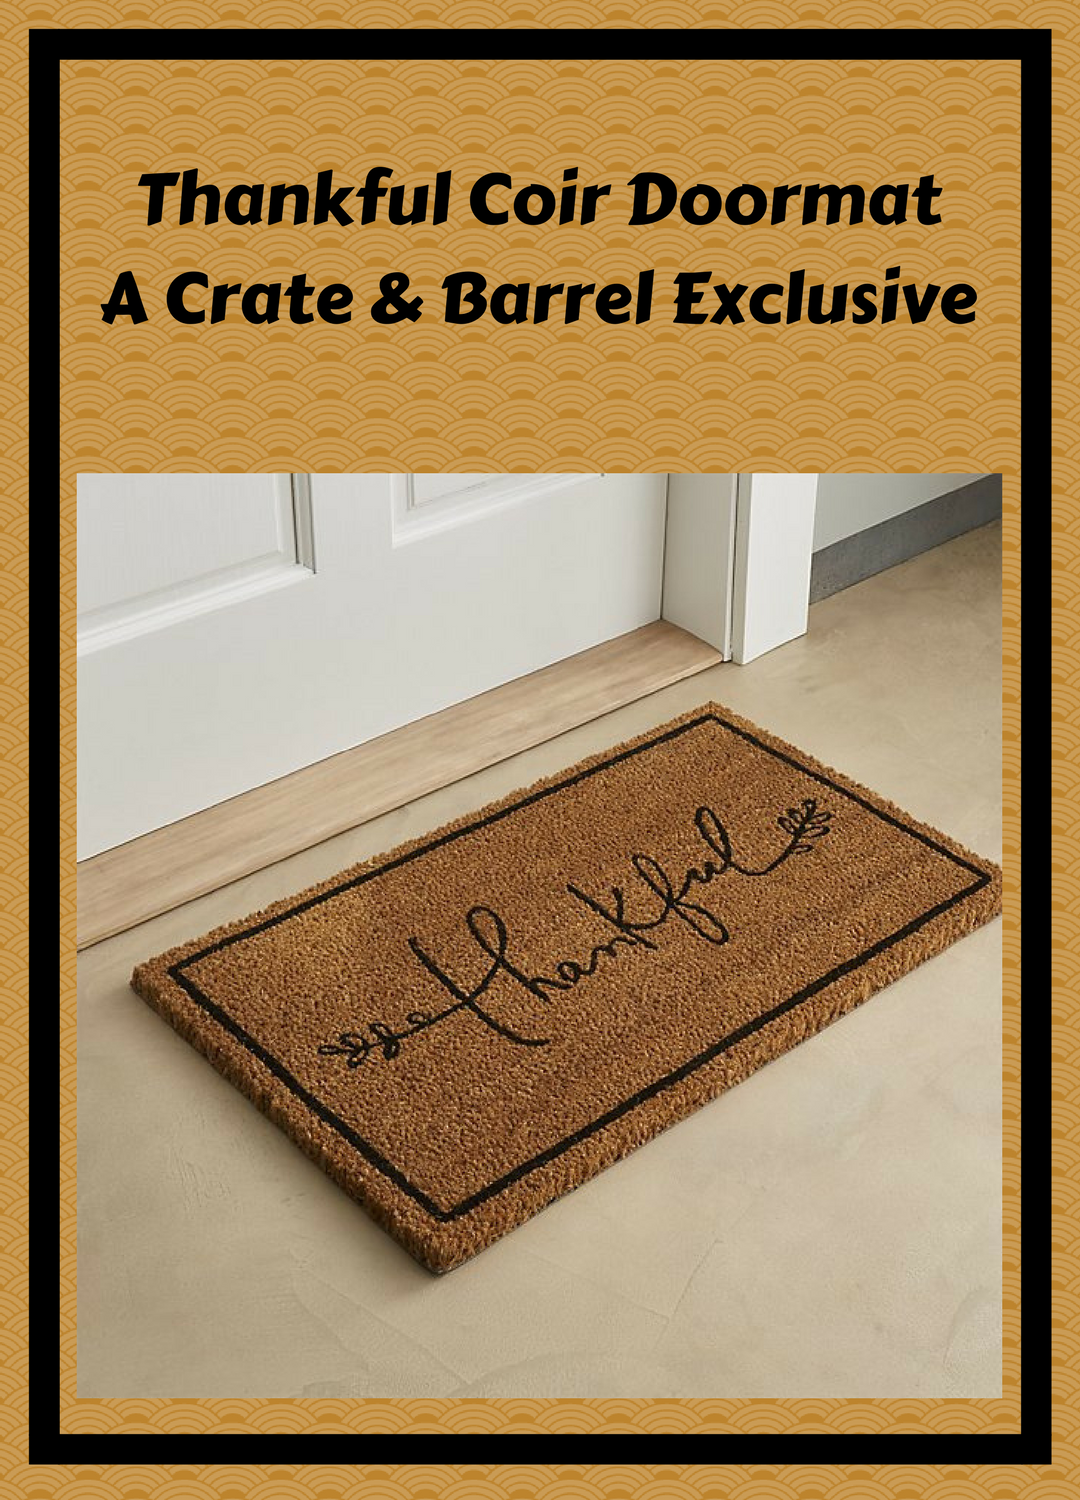 A simple thankful doormat great for fall and for greeting your a simple thankful doormat great for fall and for greeting your guests at thanksgiving kristyandbryce Images